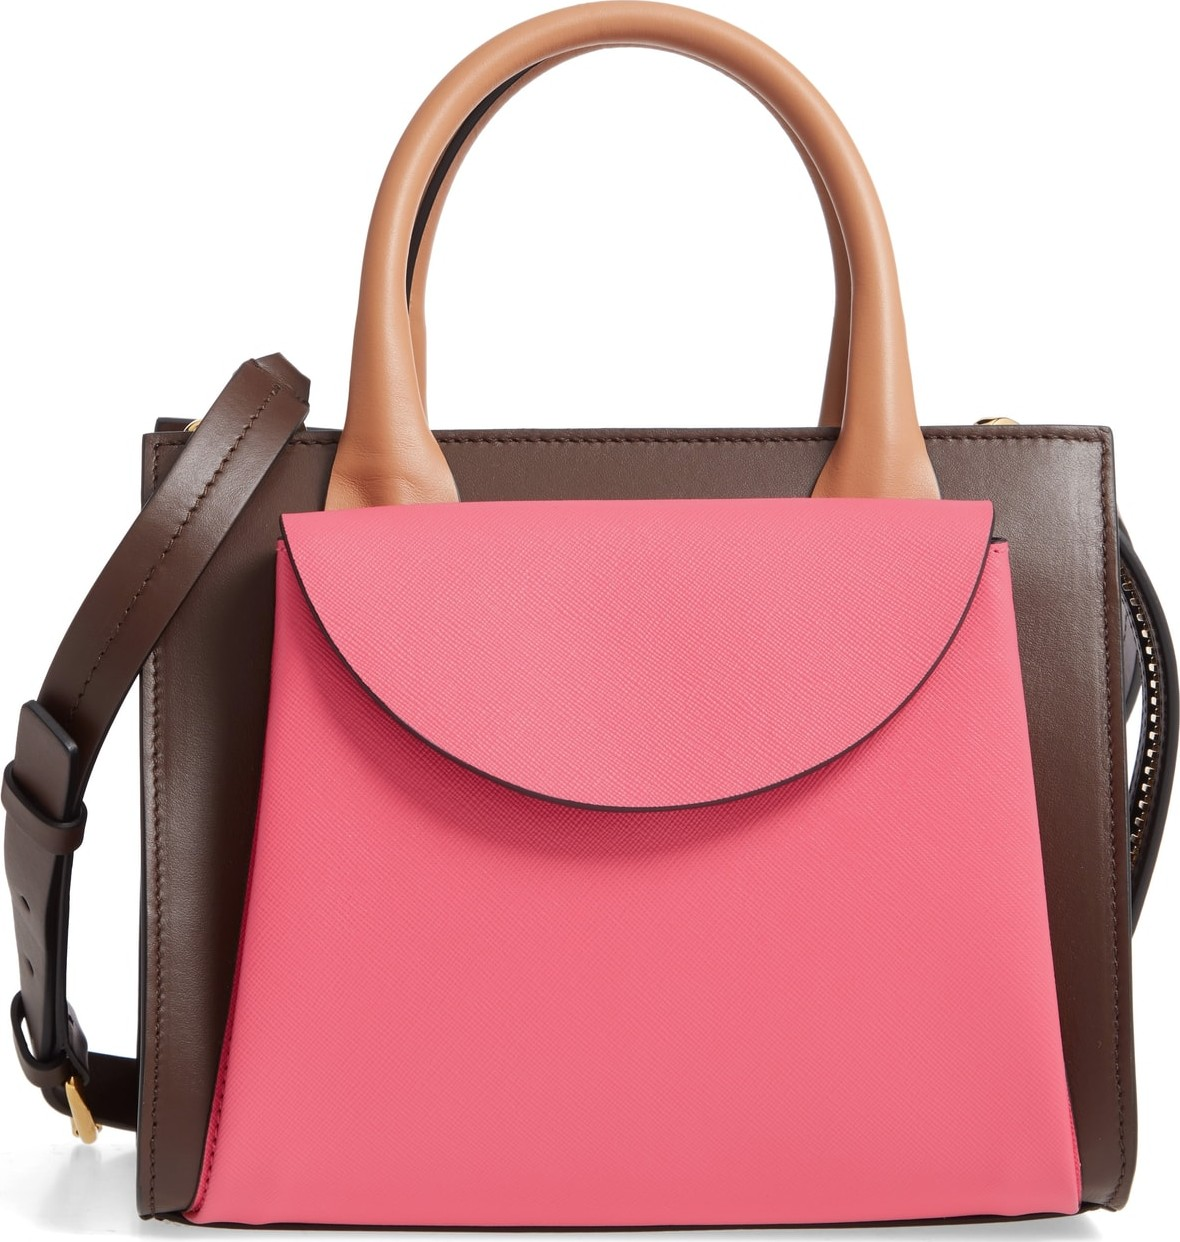 f65db9455922 Marni Small Law Colorblock Leather Top Handle Satchel - Mkt